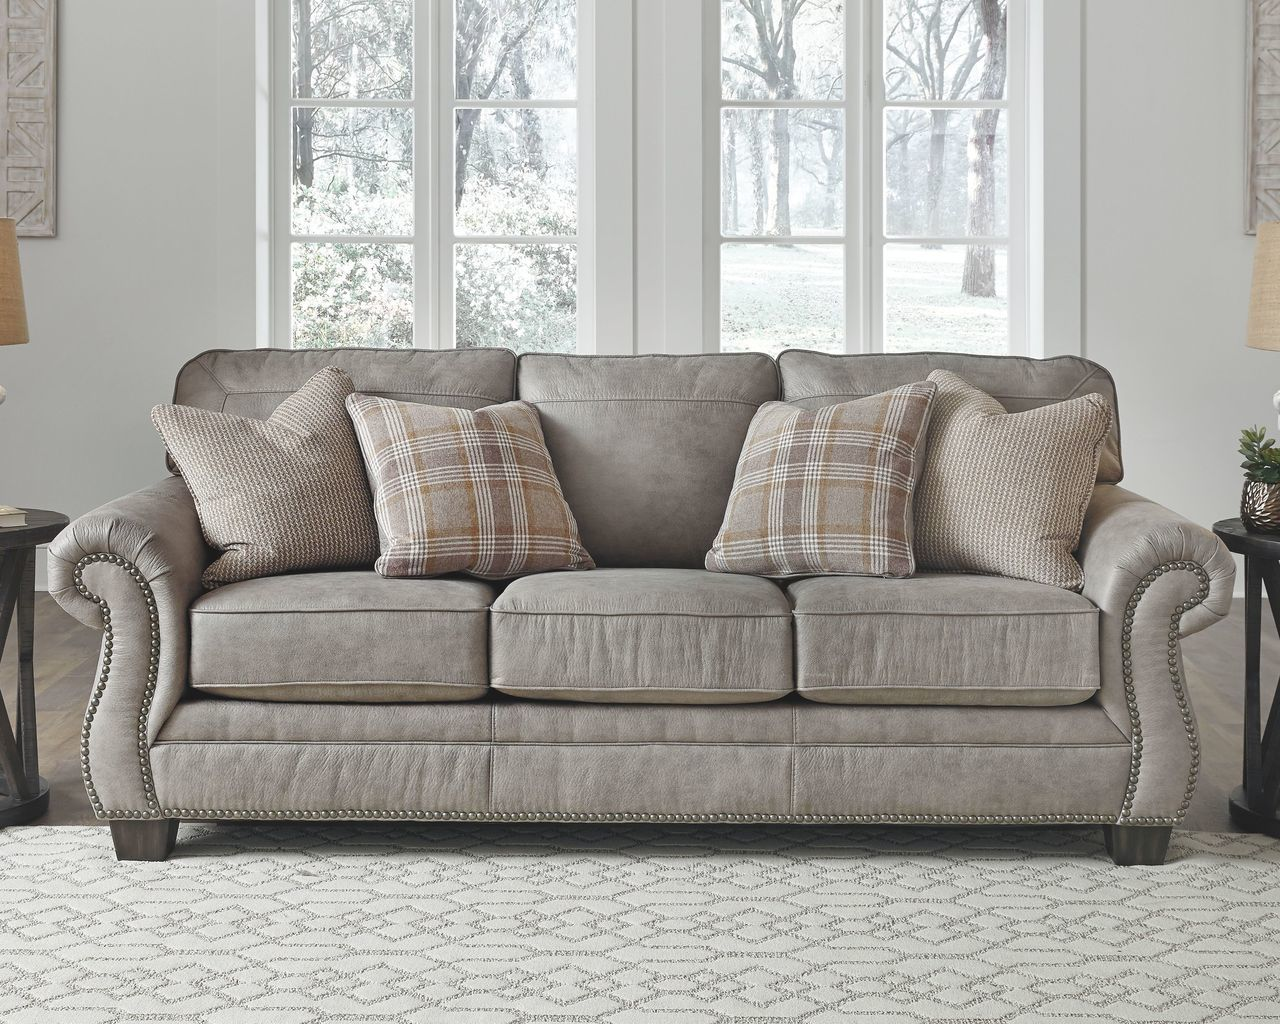 Ashley Olsberg Steel Sofa Couch On Sale At Wcc Furniture